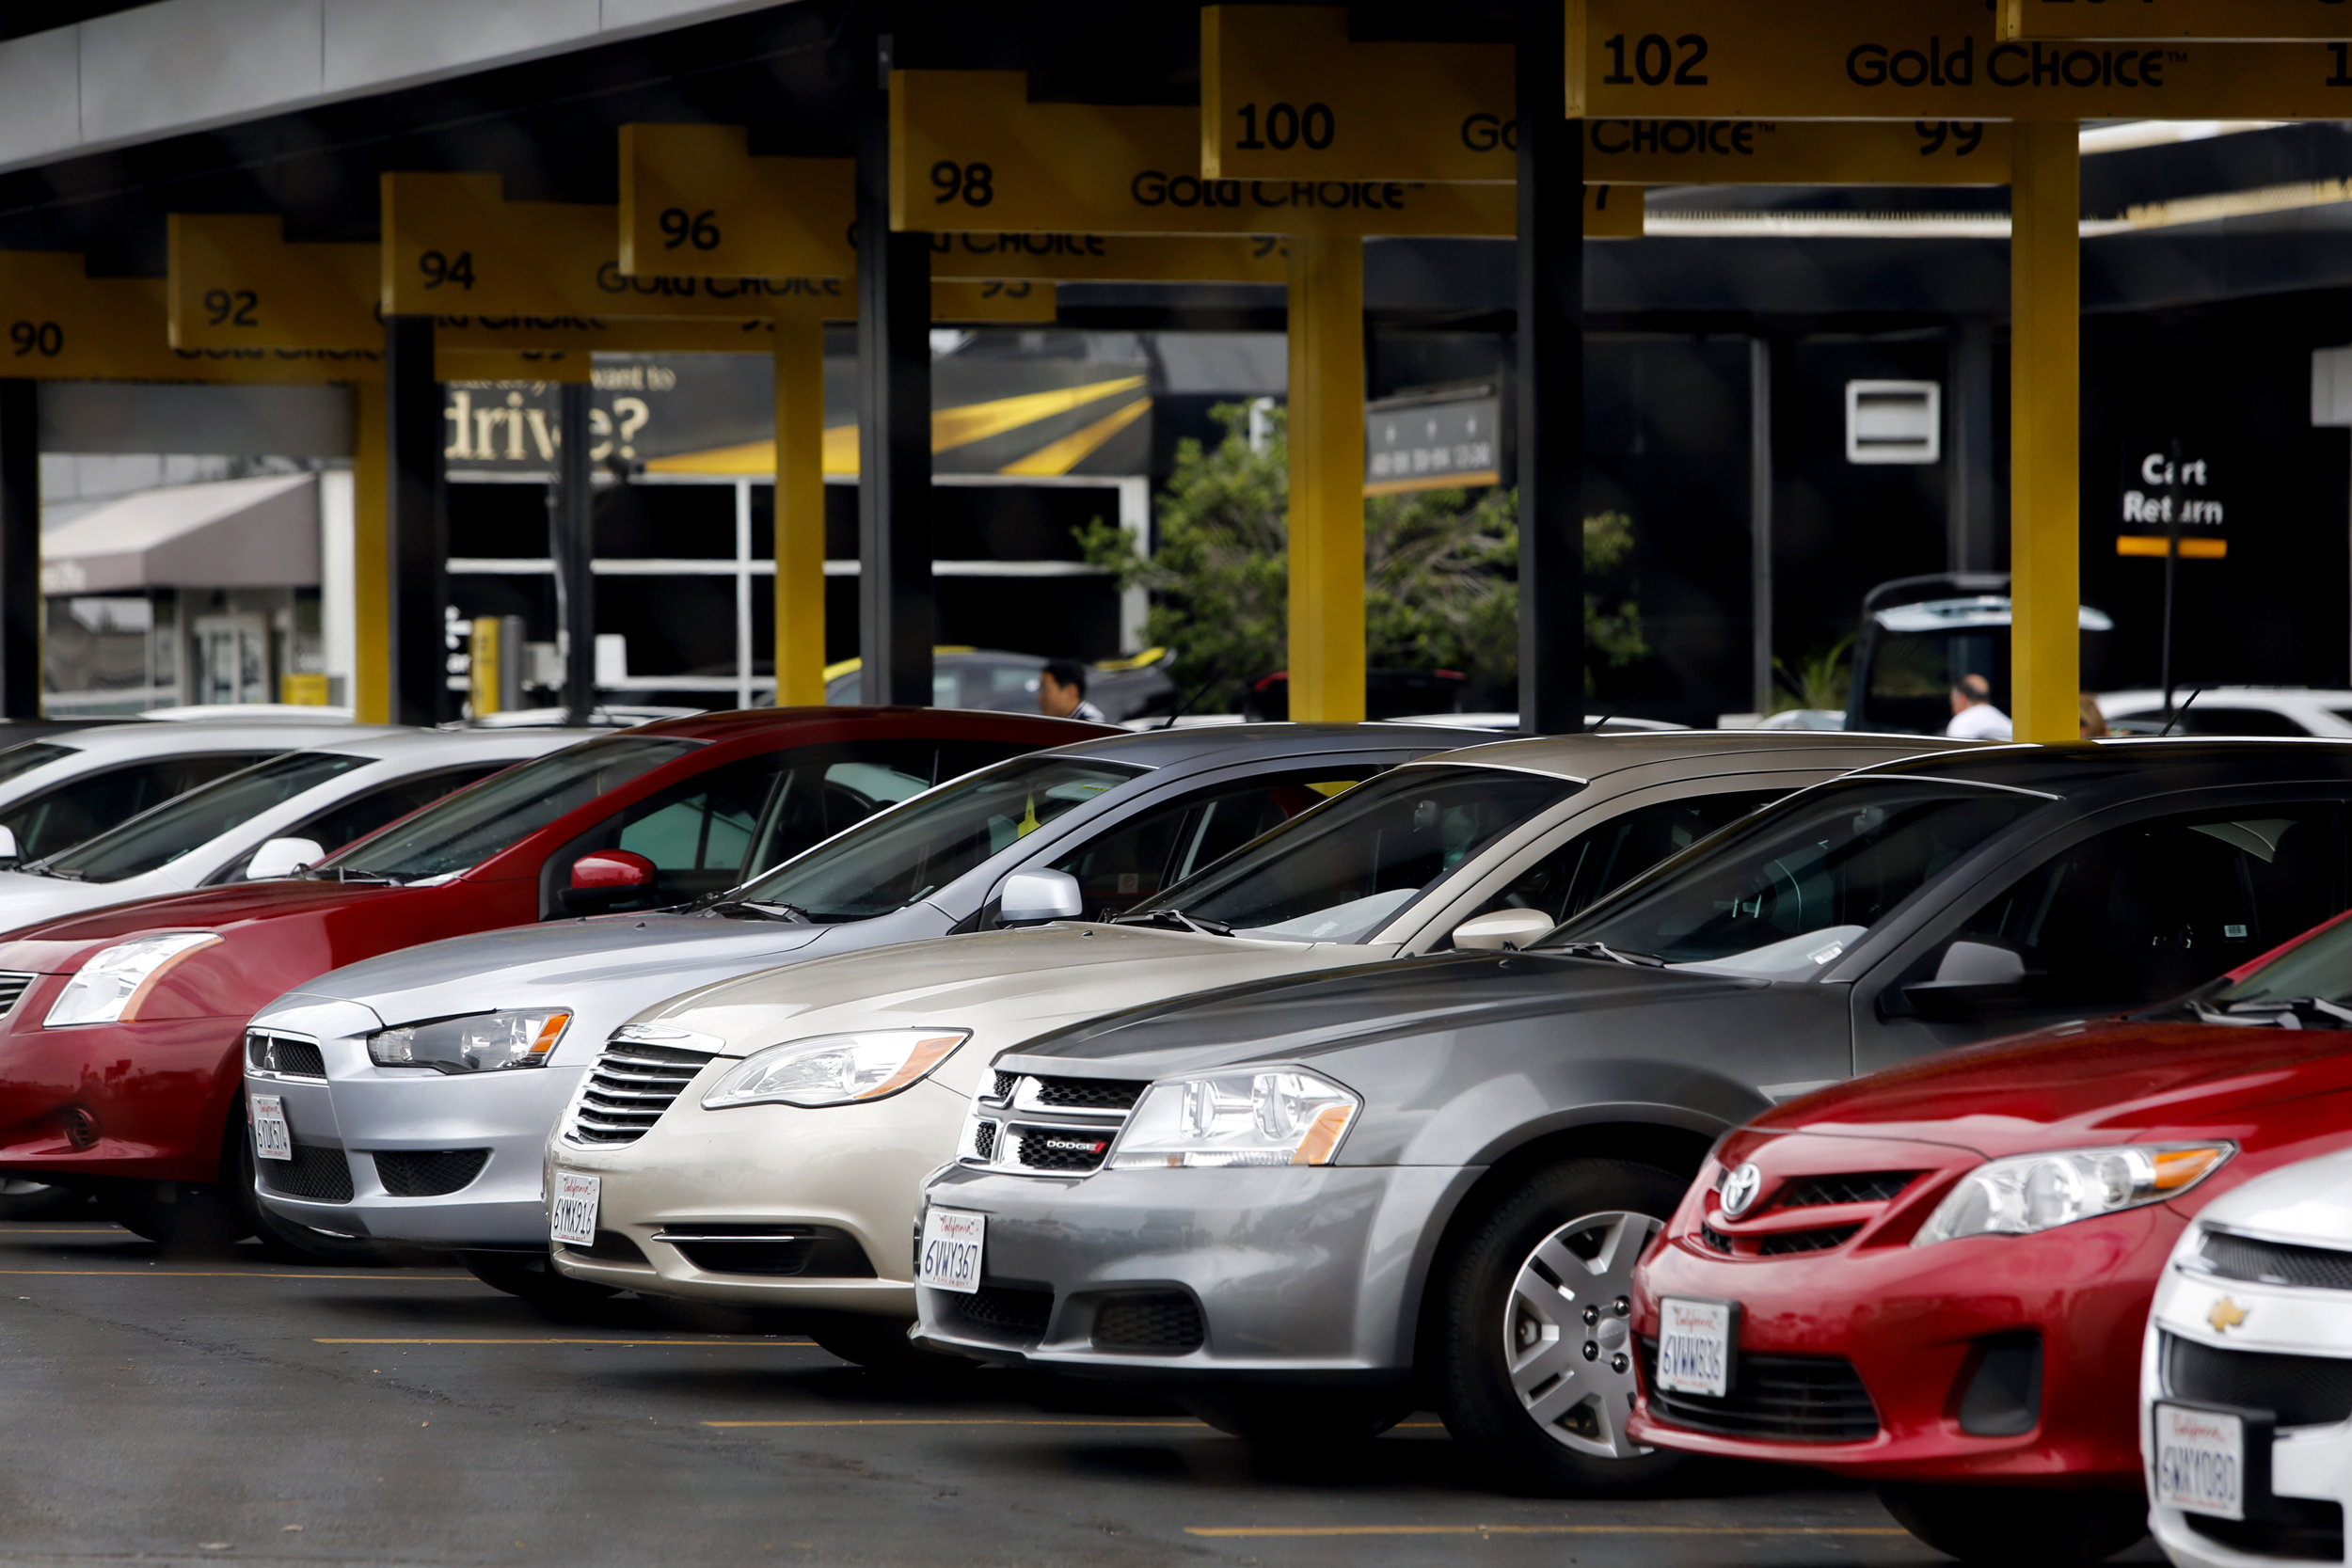 10 ways to save money on your next rental car